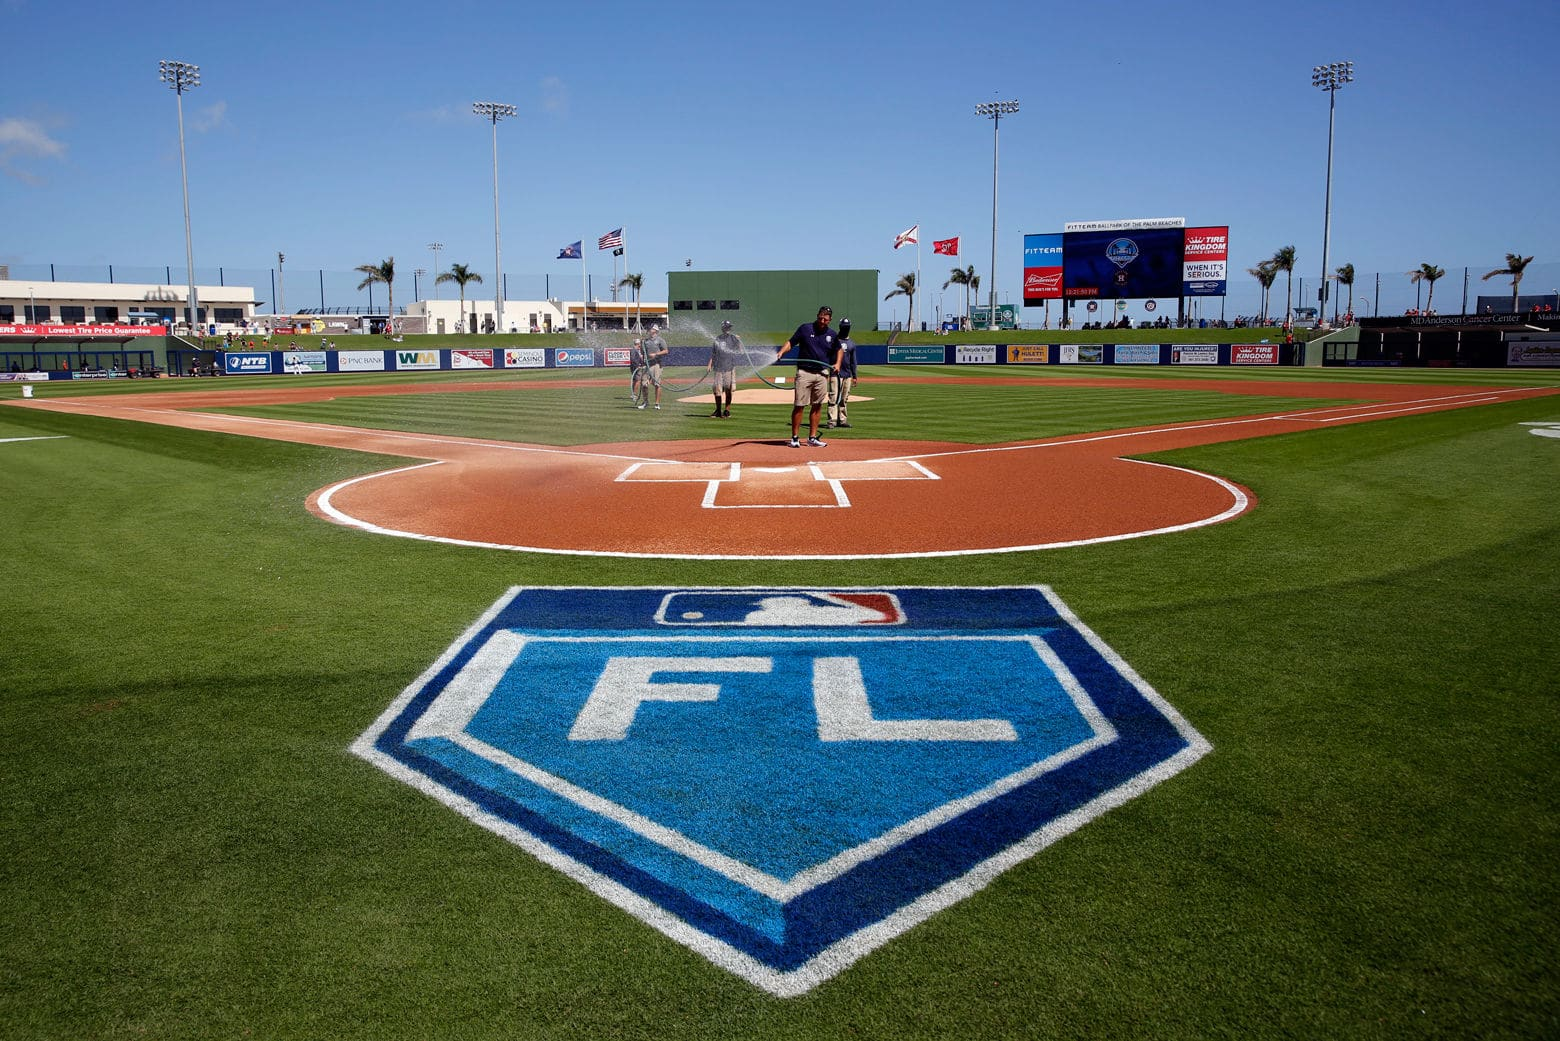 Members of the grounds crew prepare the field before the start of an exhibition spring training baseball game between the Washington Nationals and Houston Astros Friday. (AP Photo/Jeff Roberson)